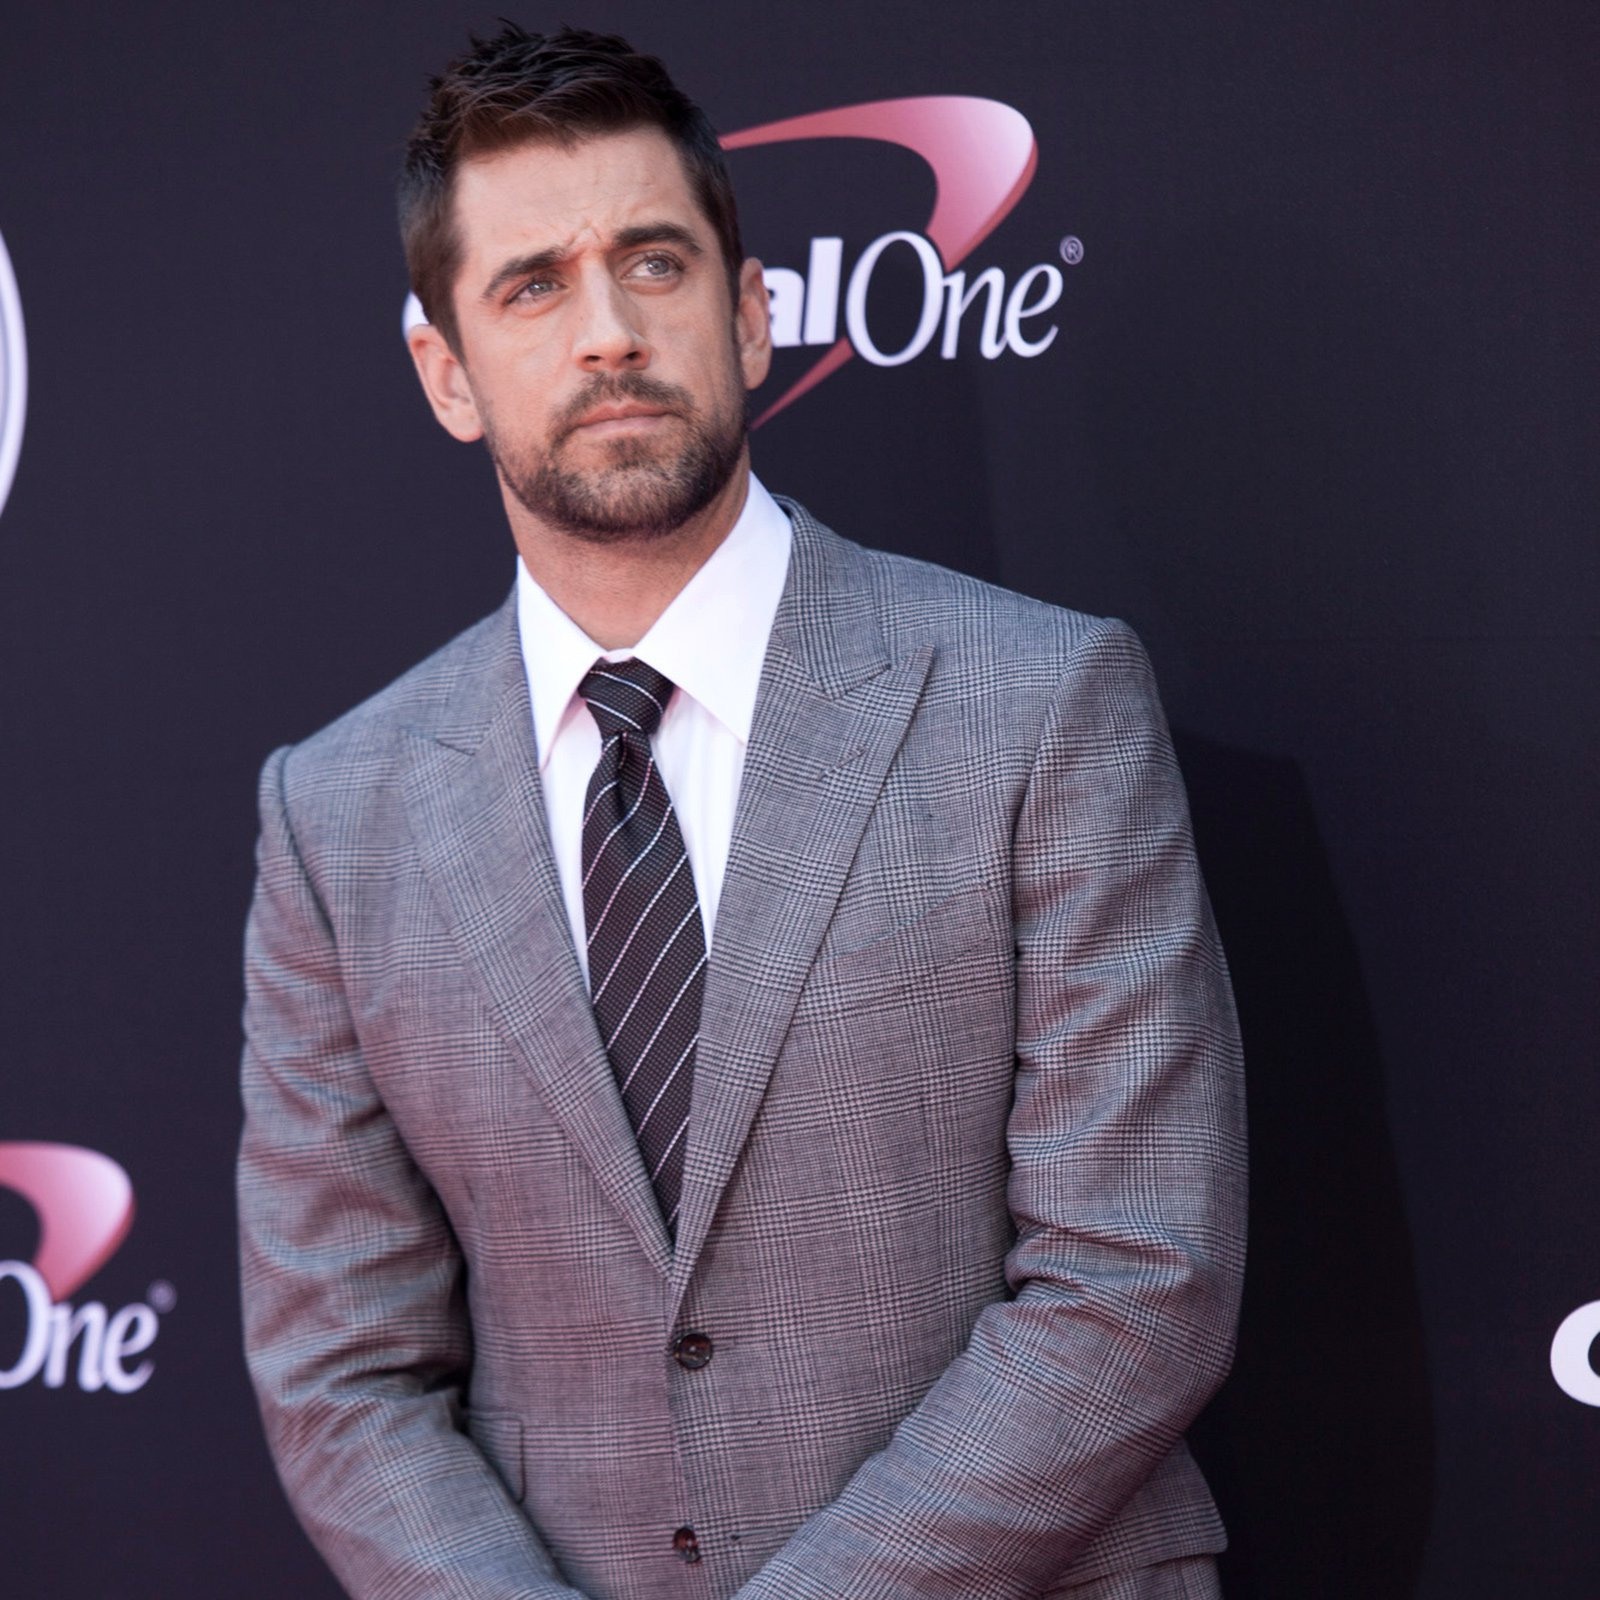 Green Bay Packers quarterback Aaron Rodgers, ESPY winner for Best Play and Best NFL Player.